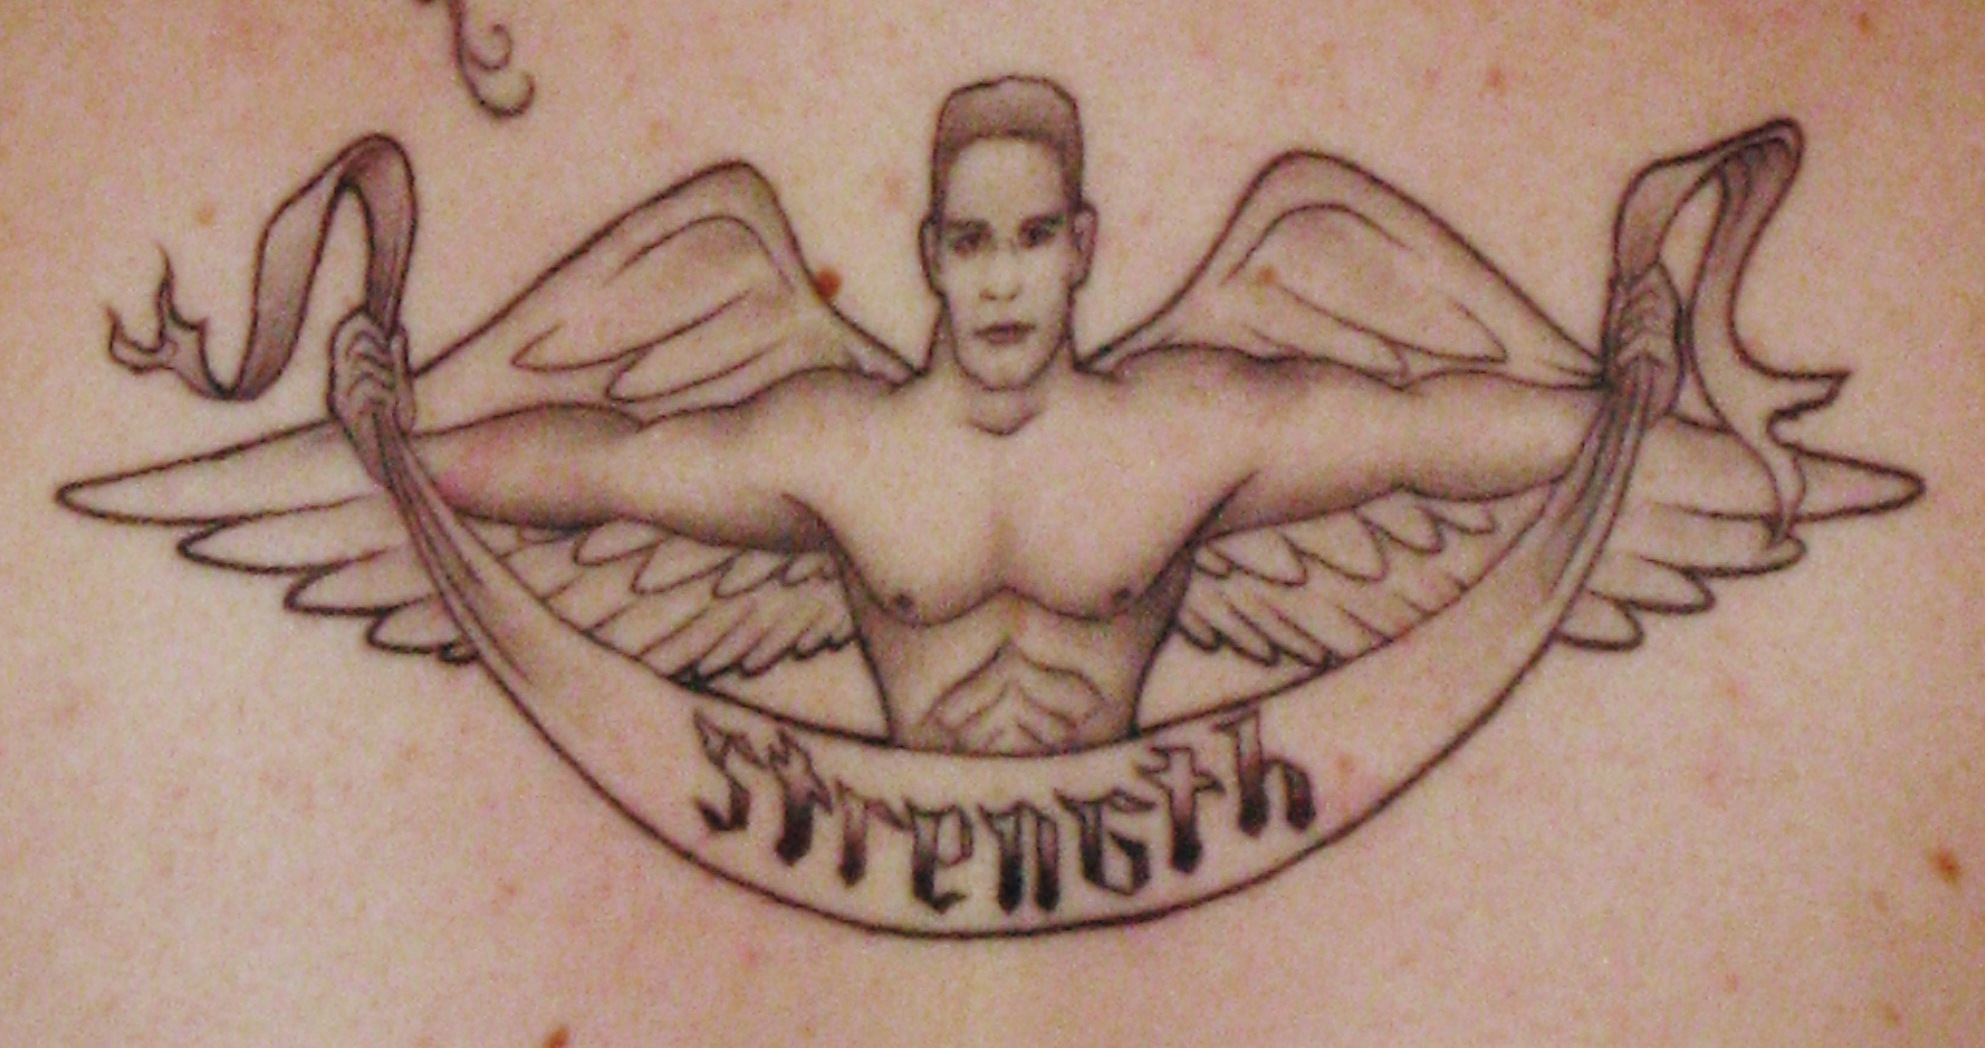 Cena Strength Angel